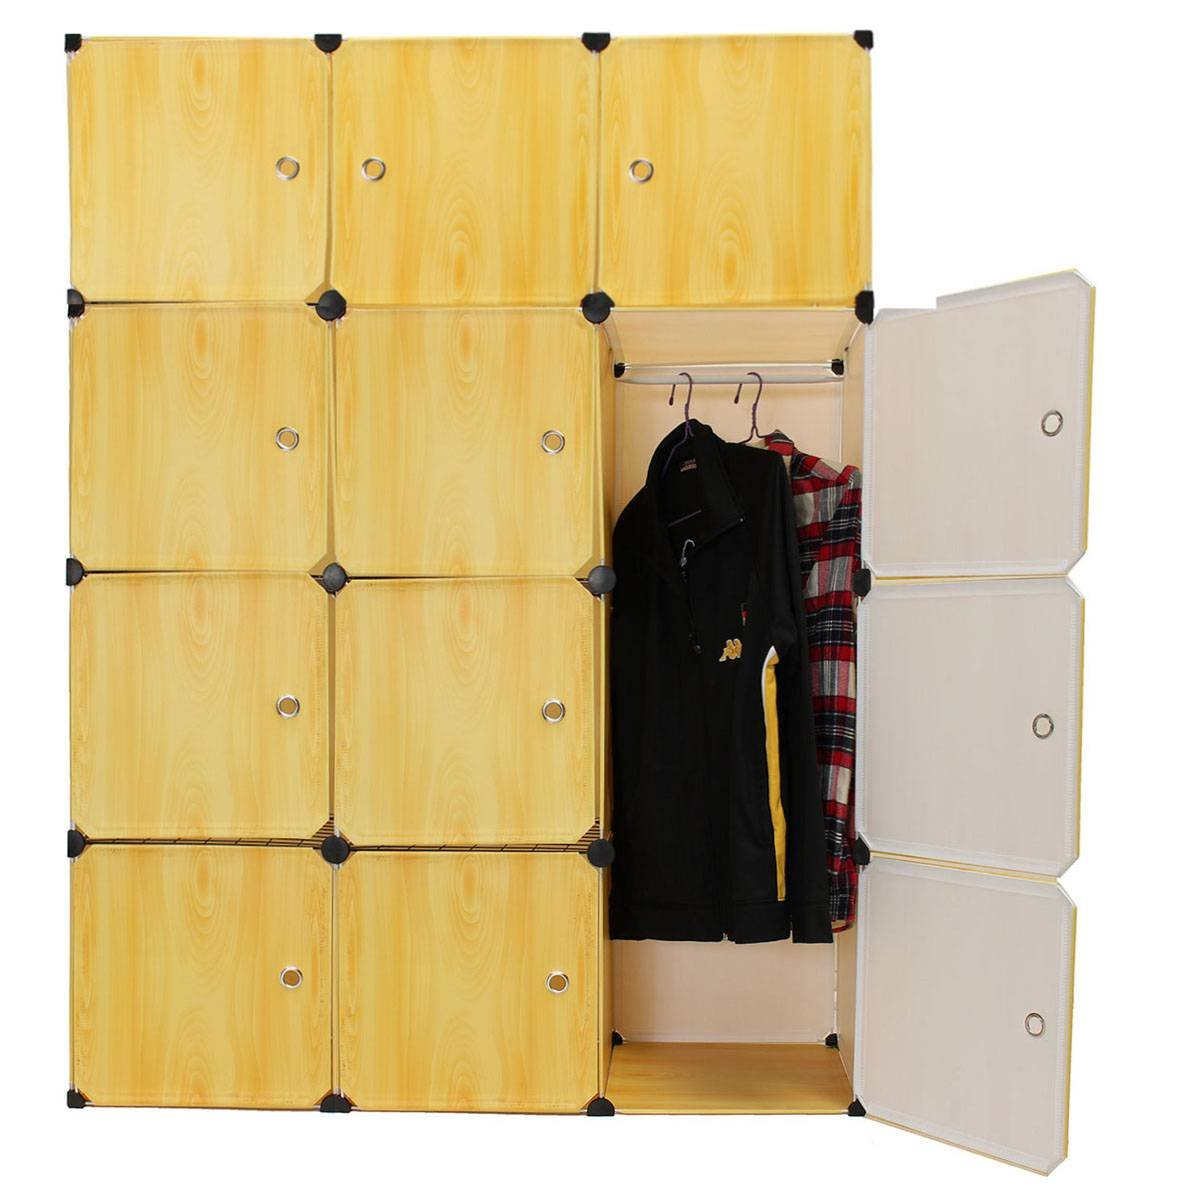 plan pdf wardrobe wardrobes closet architectures diy portable needed built walk in storage plans